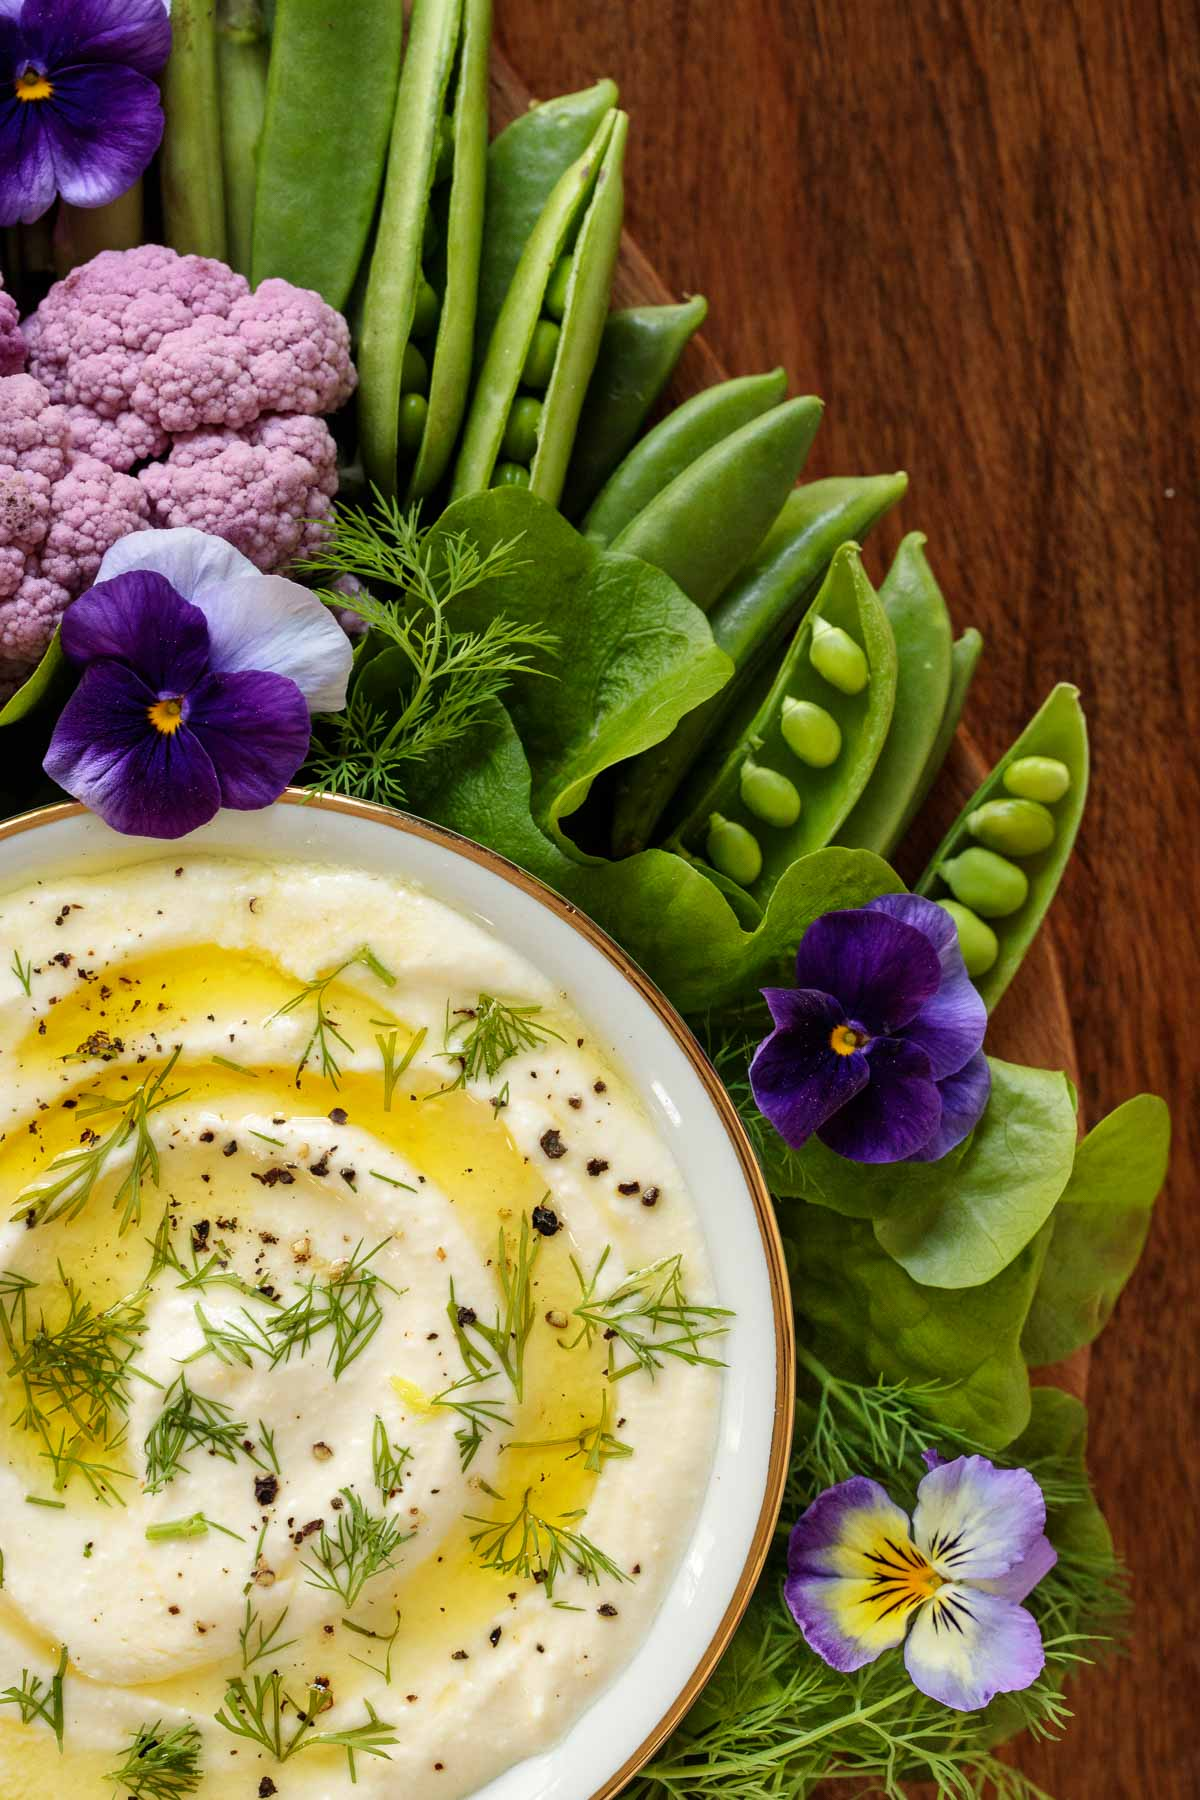 Overhead closeup photo of a Mediterranean Lemon Feta Dip surrounded by vegetables and edible flowers.